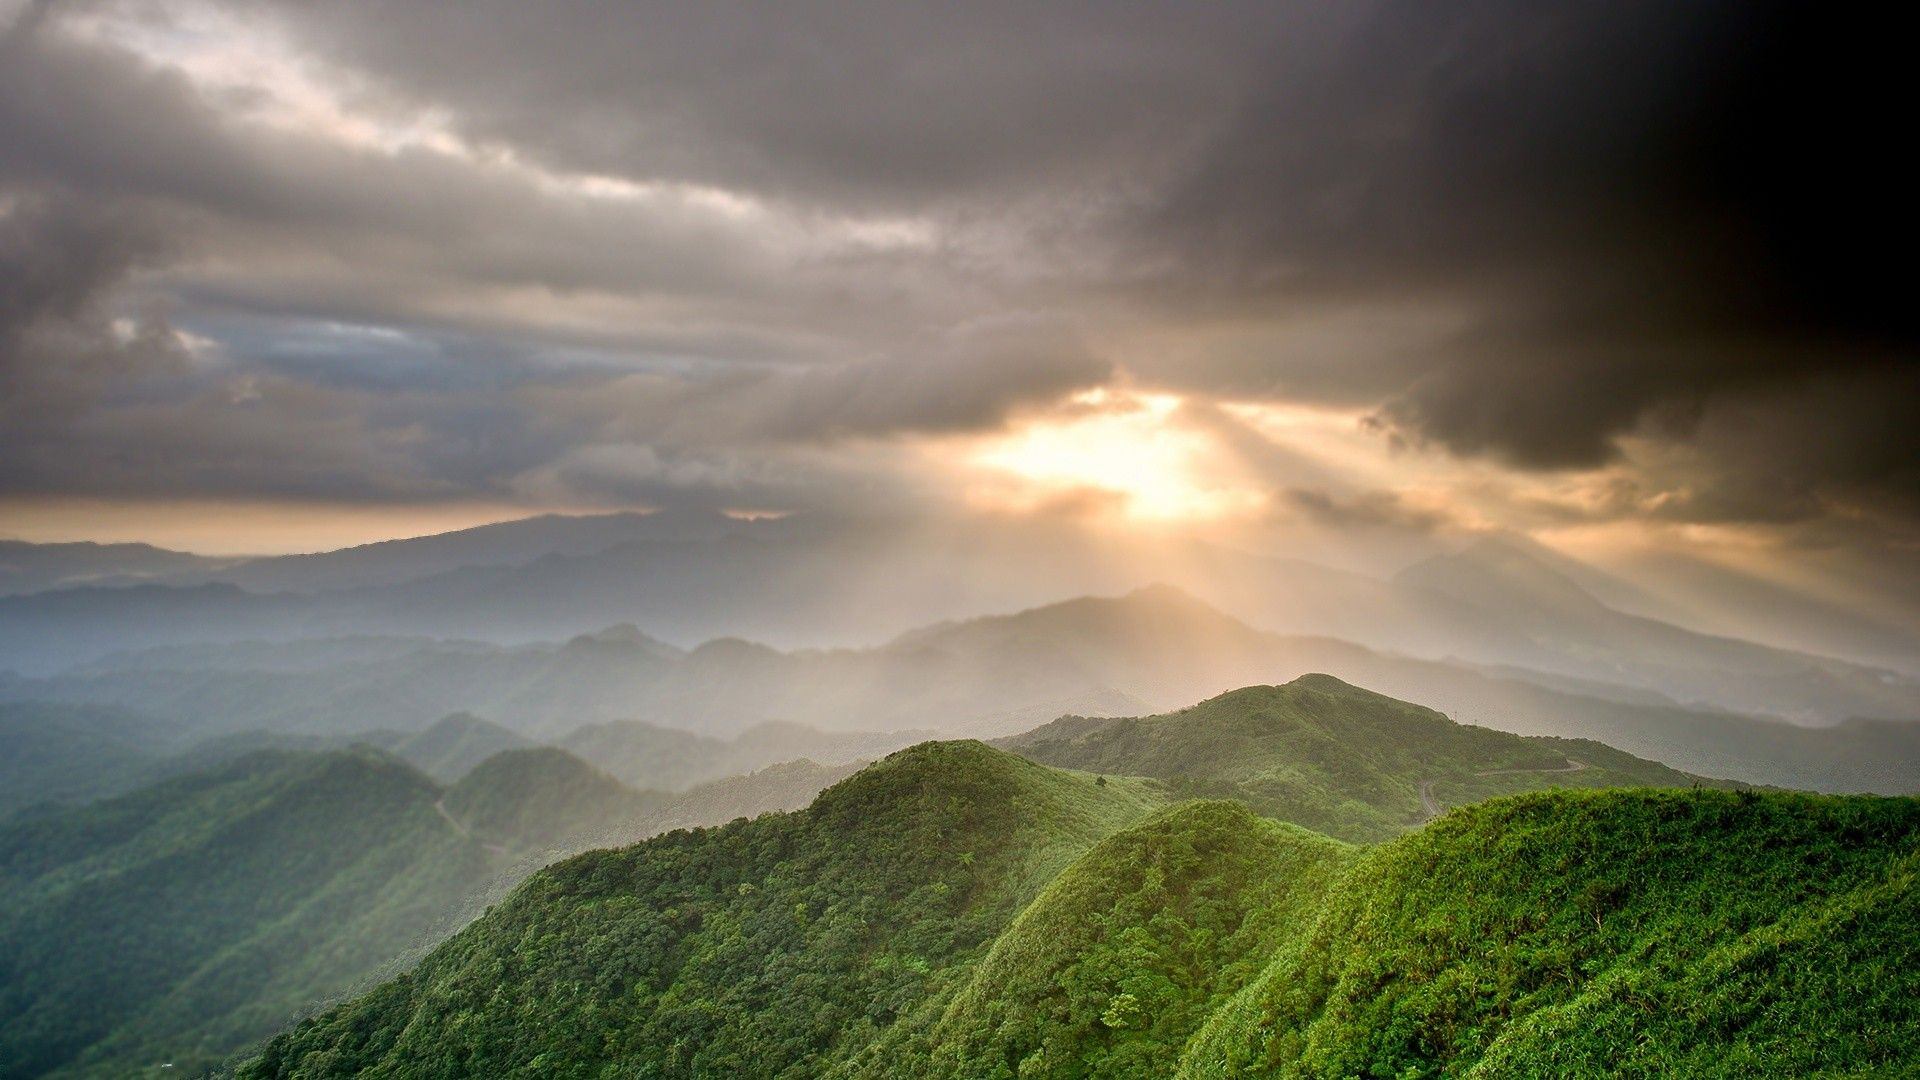 Sunlight From Clouds Green Mountains Landscape Photography Nature Clouds Mountain Landscape